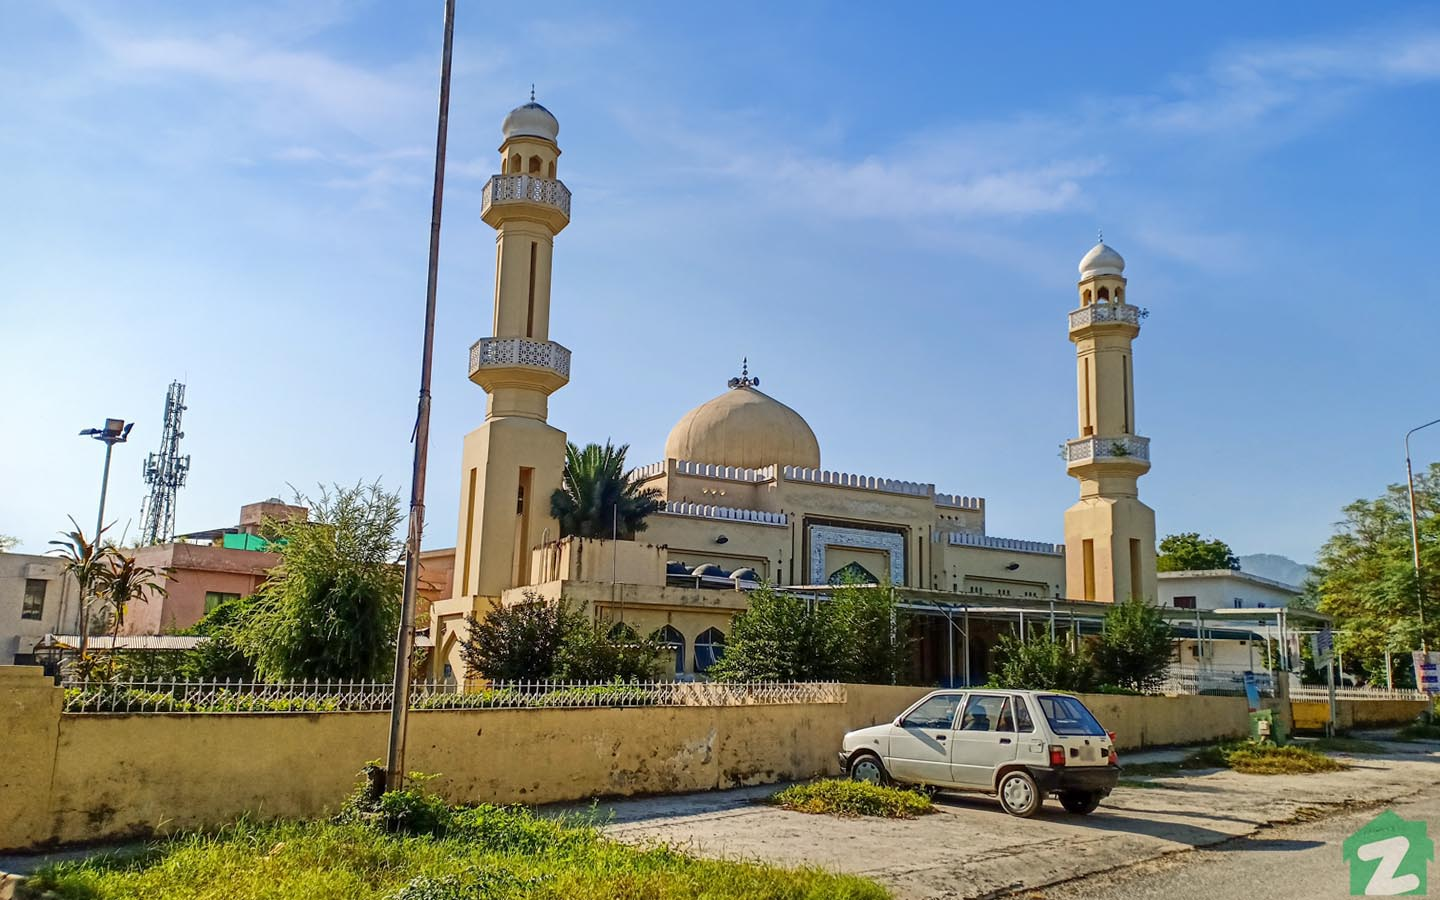 One of the popular mosques is F-7 Markaz Mosque.